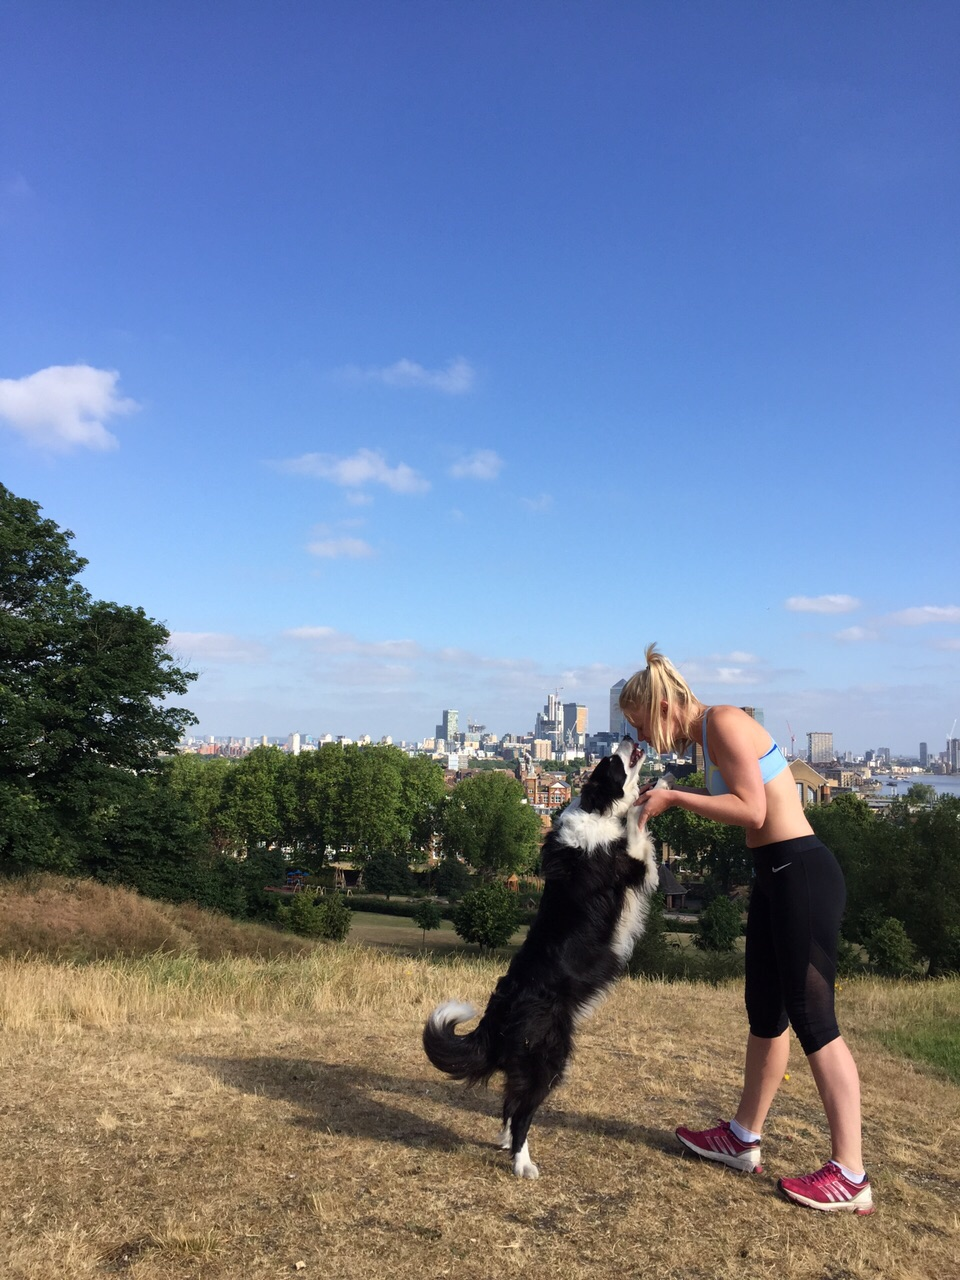 Me and my dog Gatsby in Greenwich